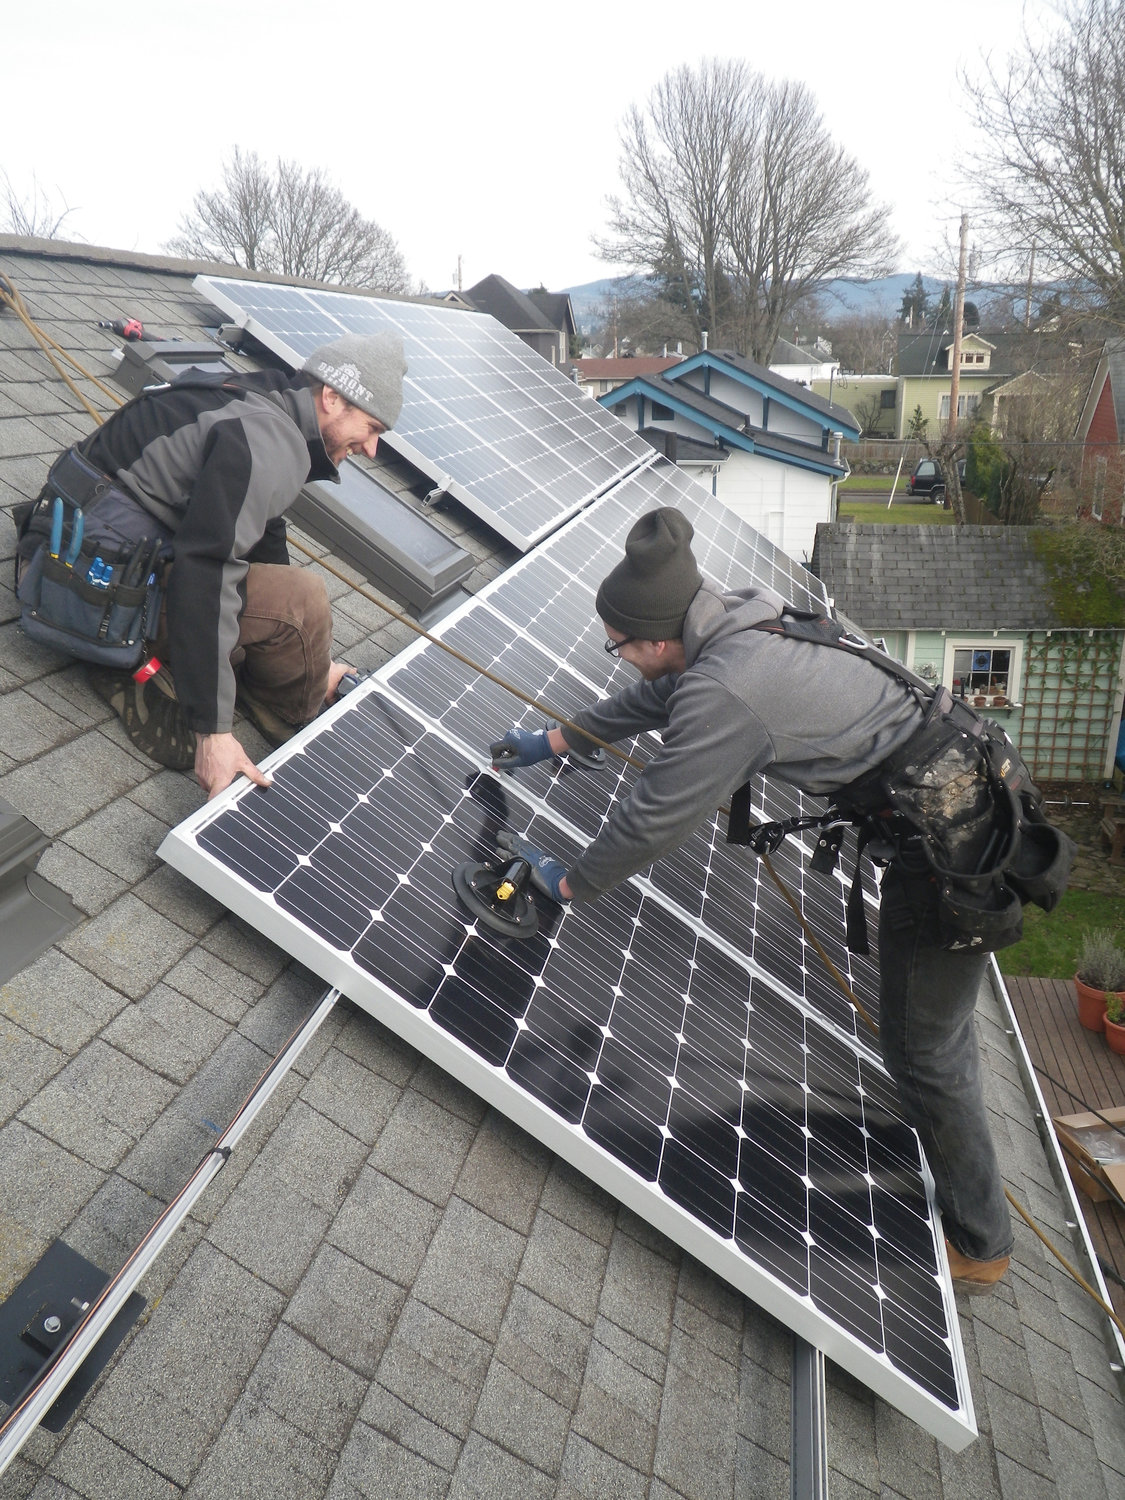 Workers installing solar panels onto the roofs of local homes.